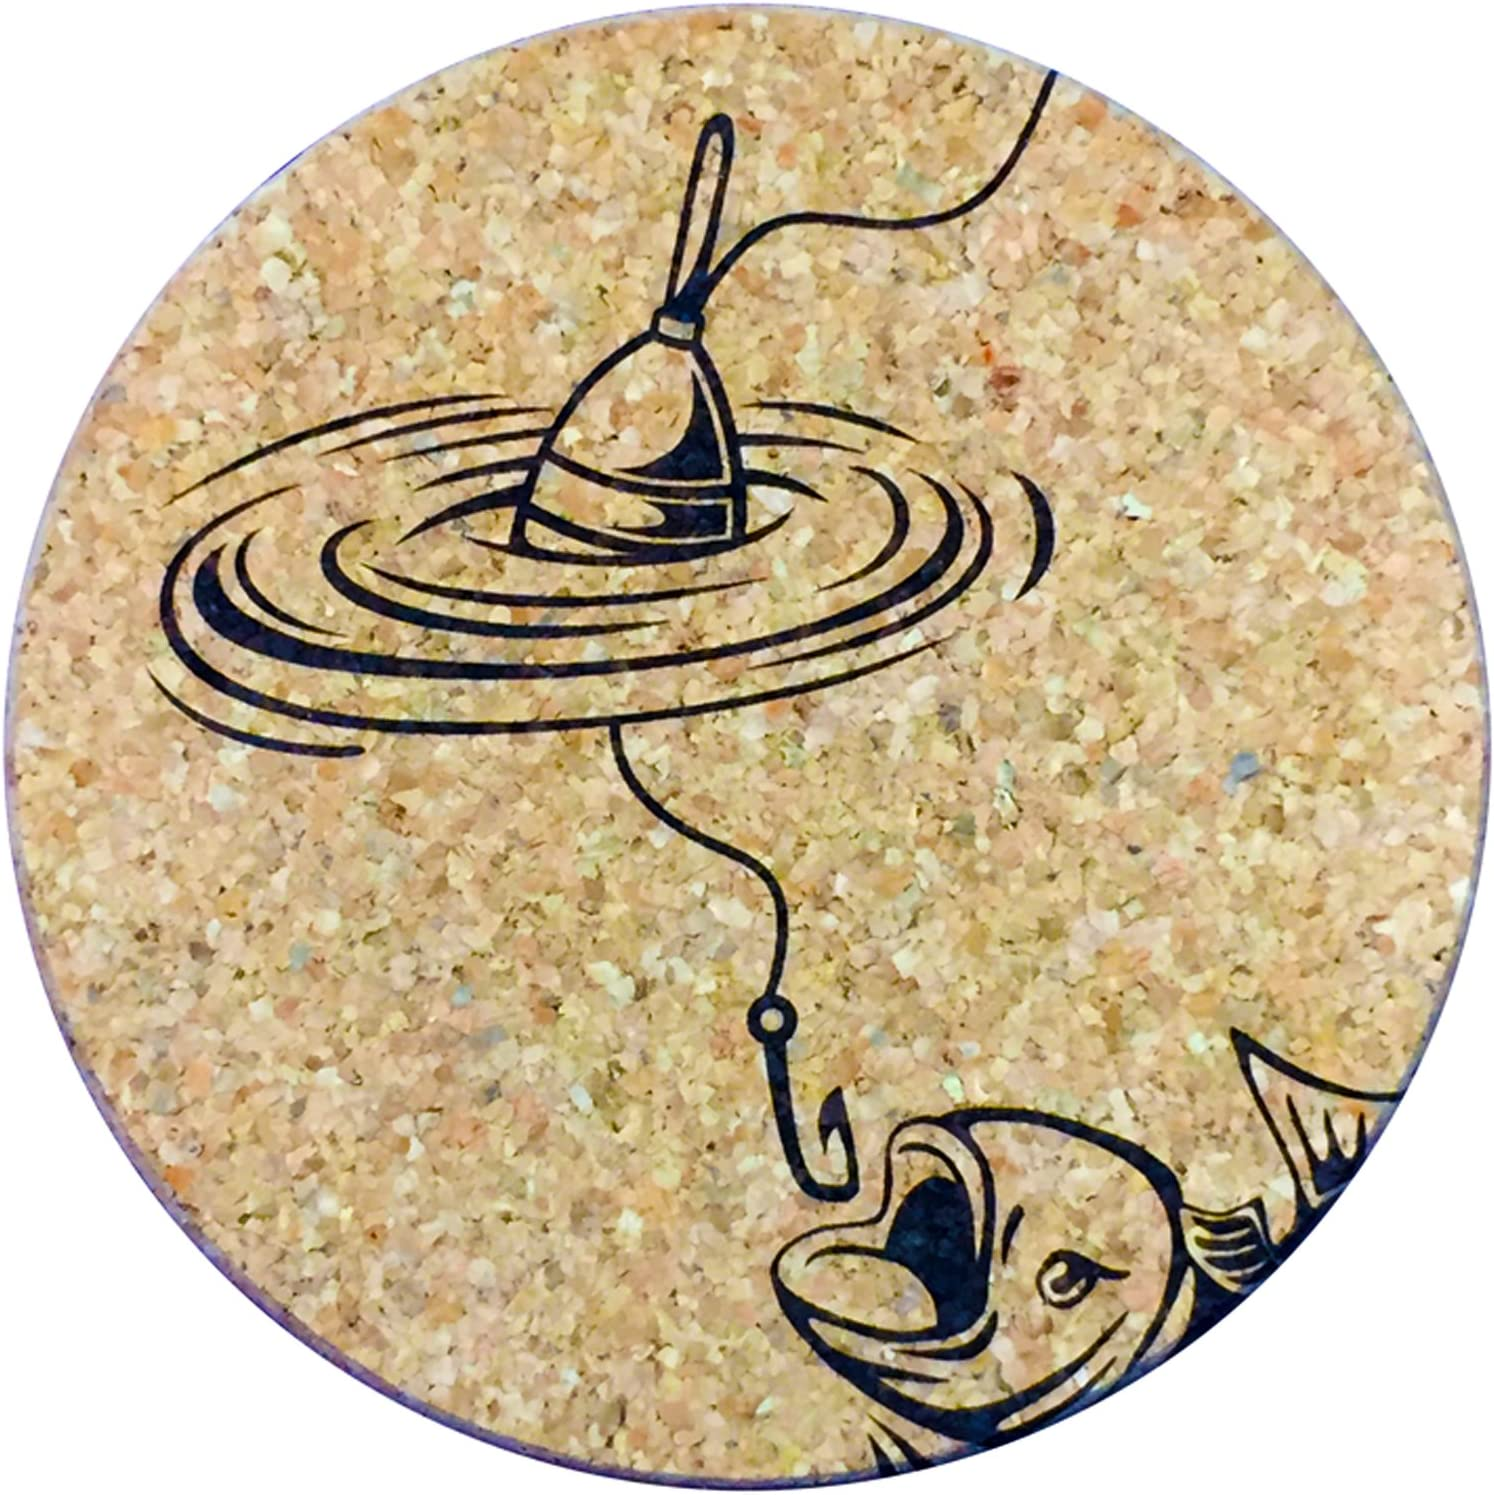 XL Coasters Gone Fishing (6 Inch, Set of 2) – Oversized cork absorbent drink coasters